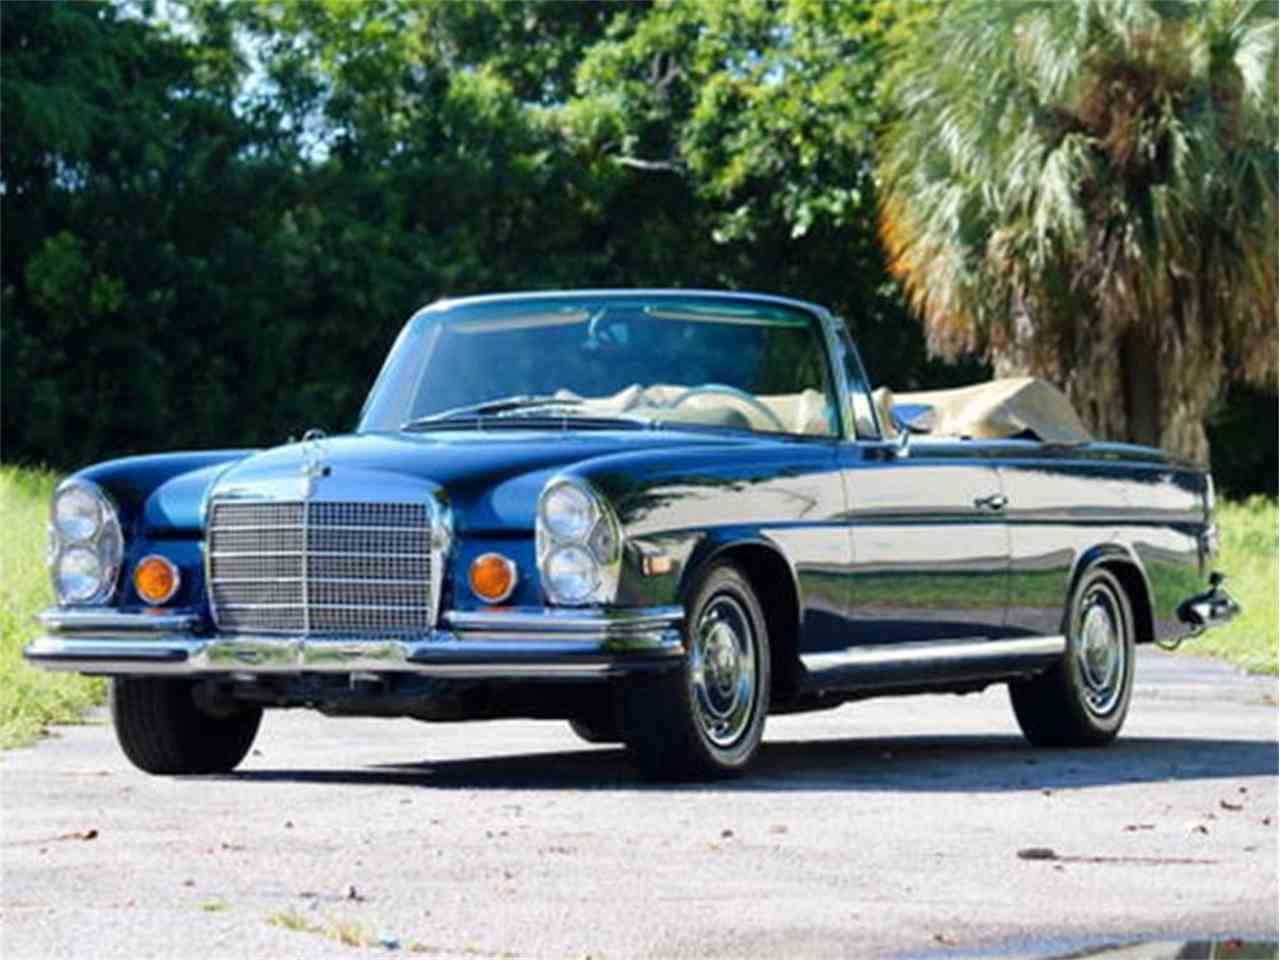 1971 mercedes benz 280se for sale cc for Mercedes benz for sale by owner in florida